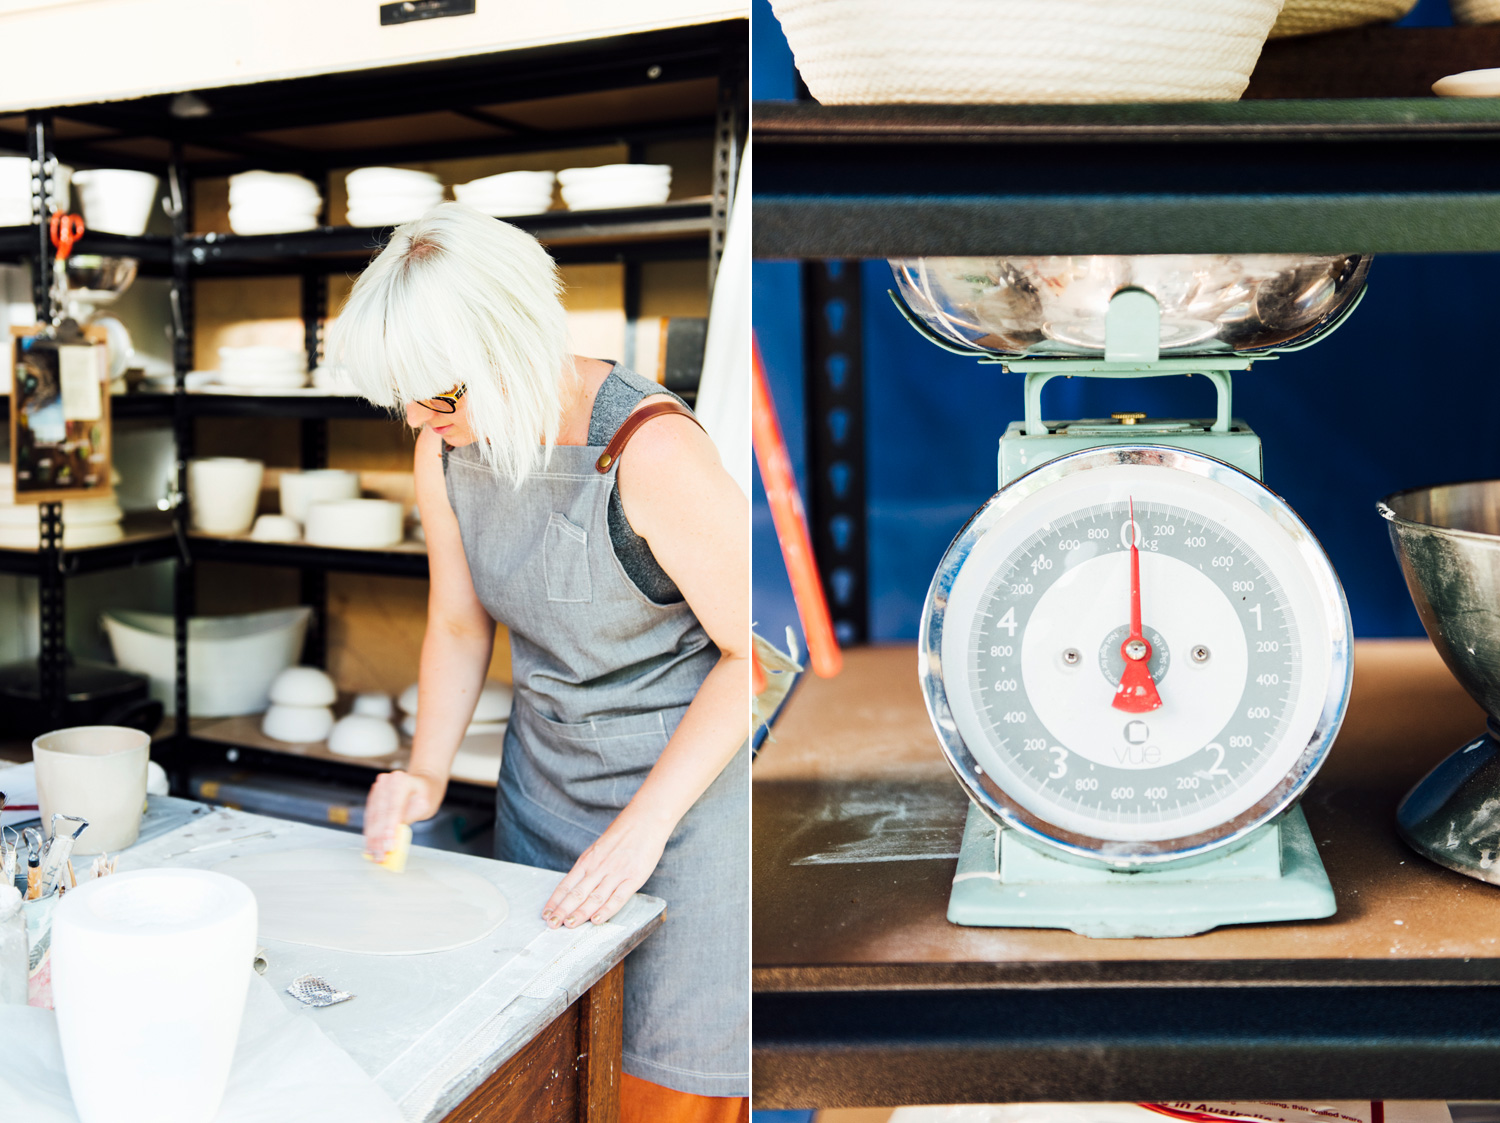 043-katie-mitchell-in-the-studio-perth-ceramicist-winterwares.jpg